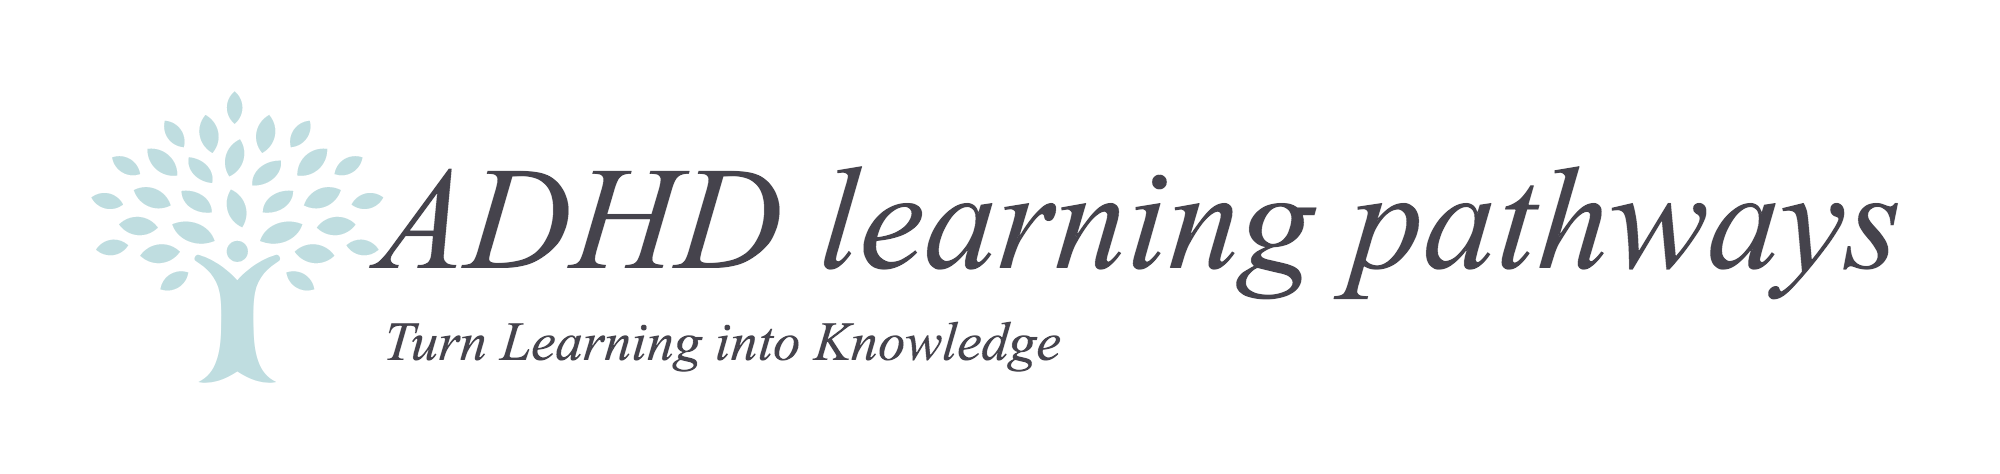 ADHD learning pathways-logo (2).png